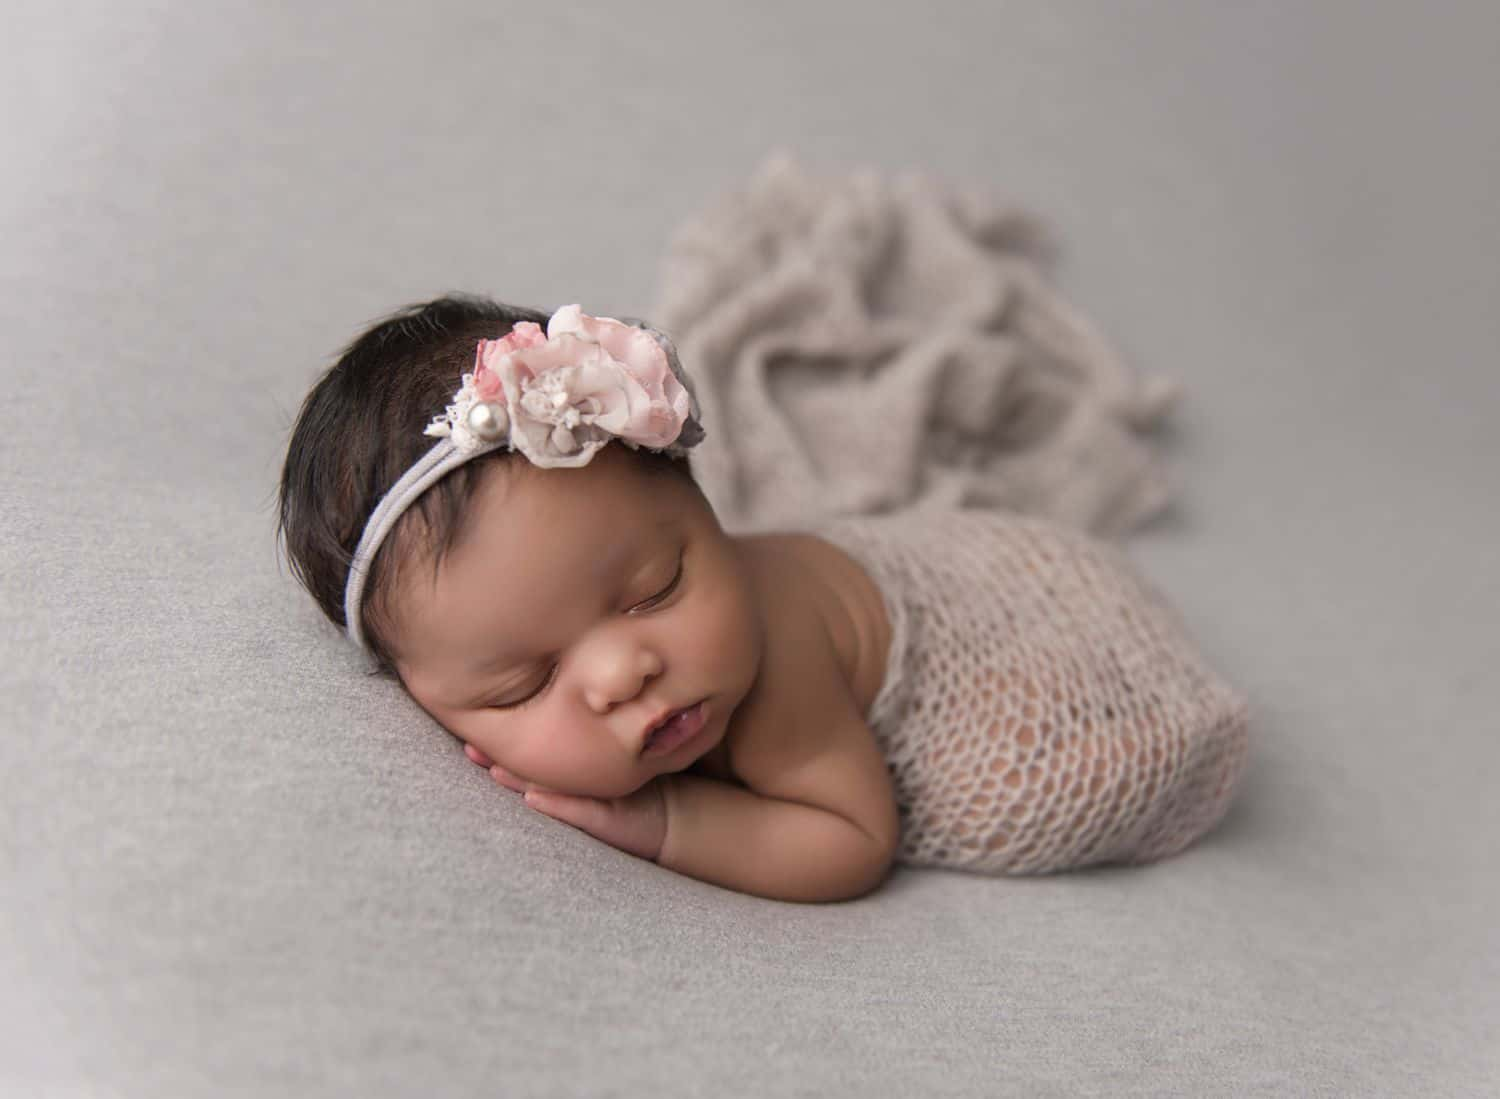 Photographers who specialize are now the gold standard for clients wanting the best newborn photographs, wedding photographs, and more. Here's why. (Featuring Chaya Braun)